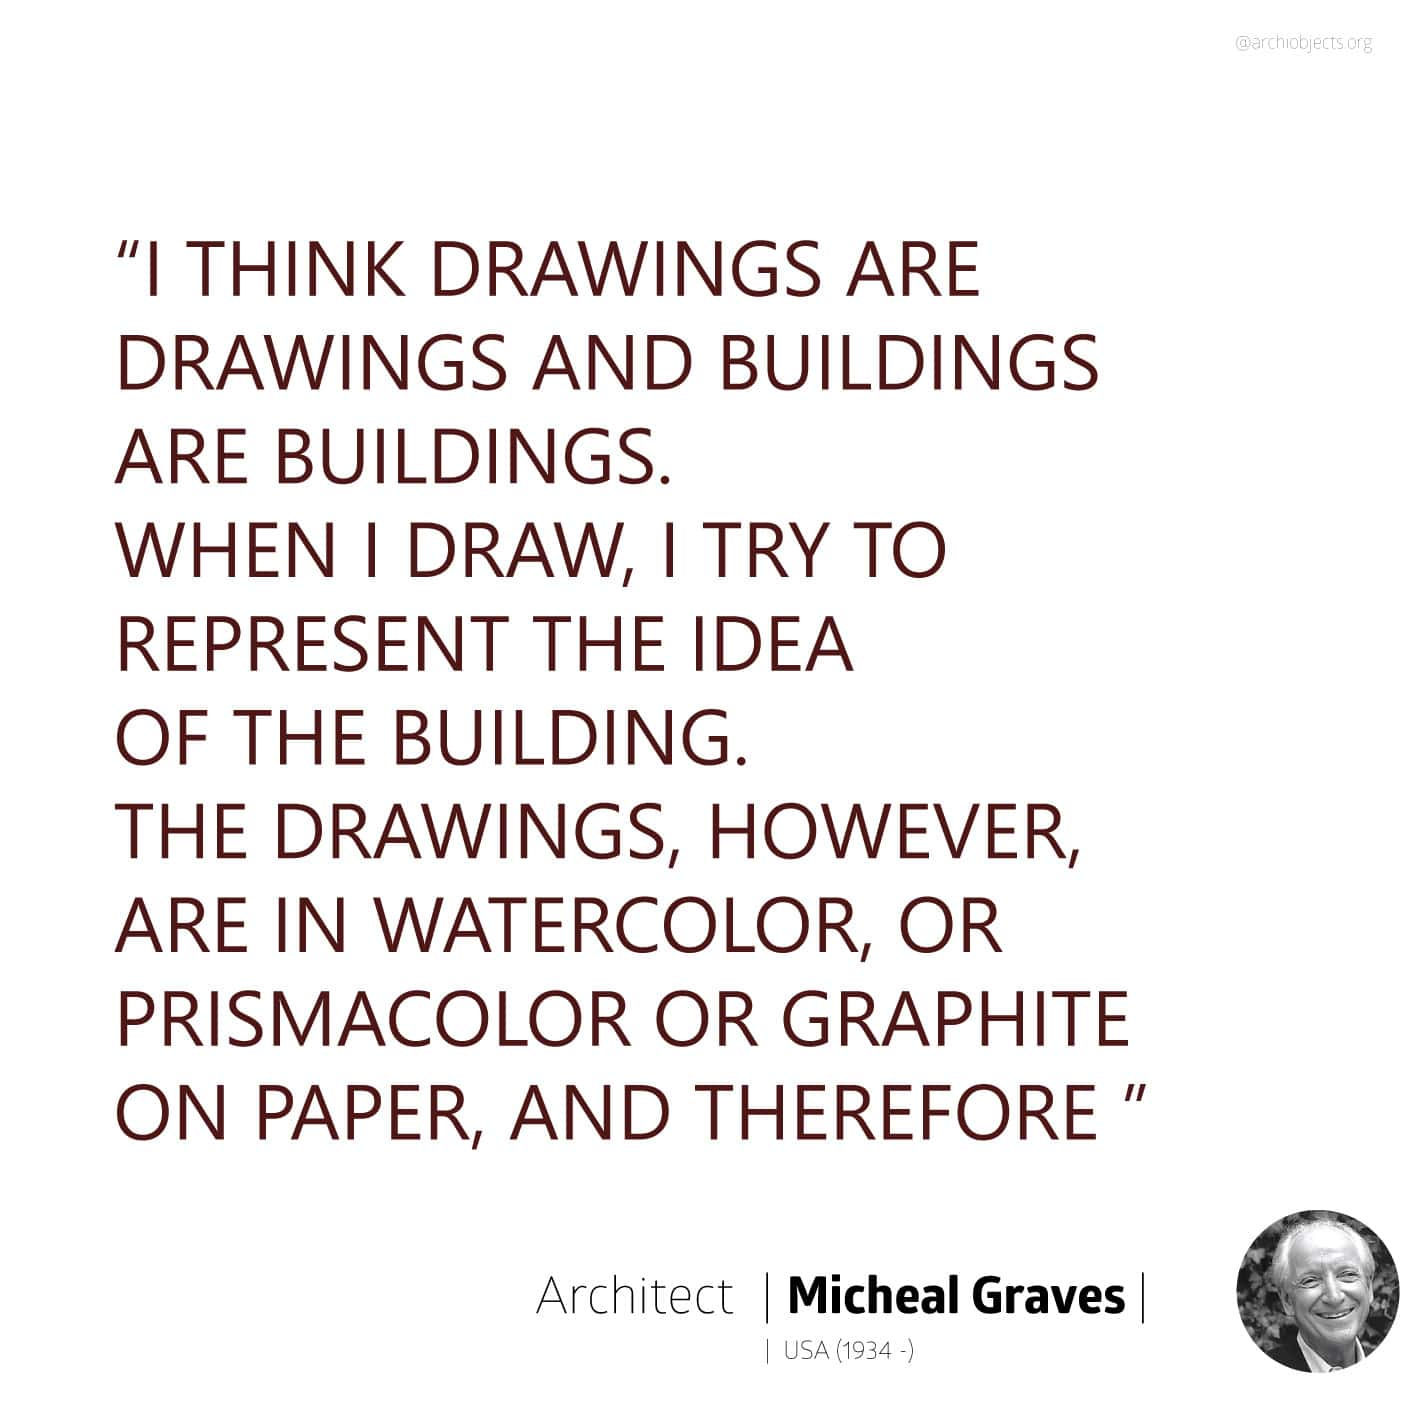 graves quote Architectural Quotes - Worth spreading Architects' voice